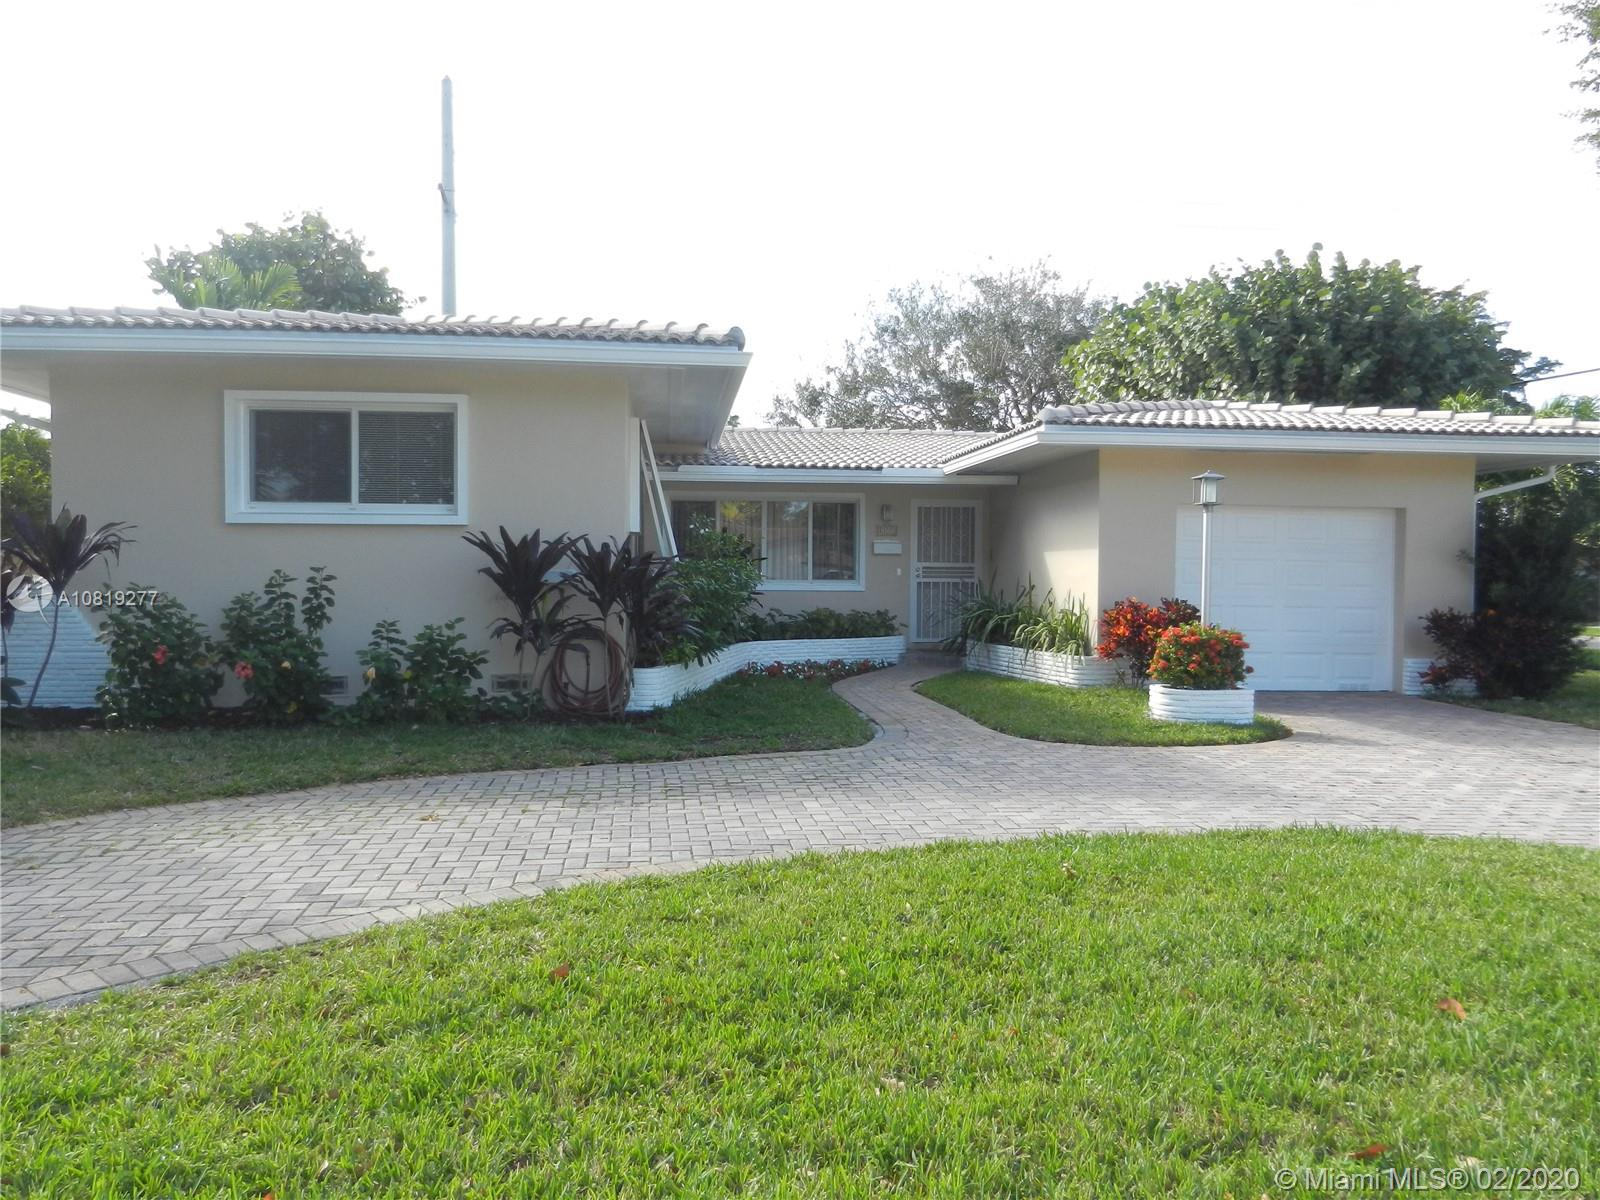 1190  Dove Ave  For Sale A10819277, FL